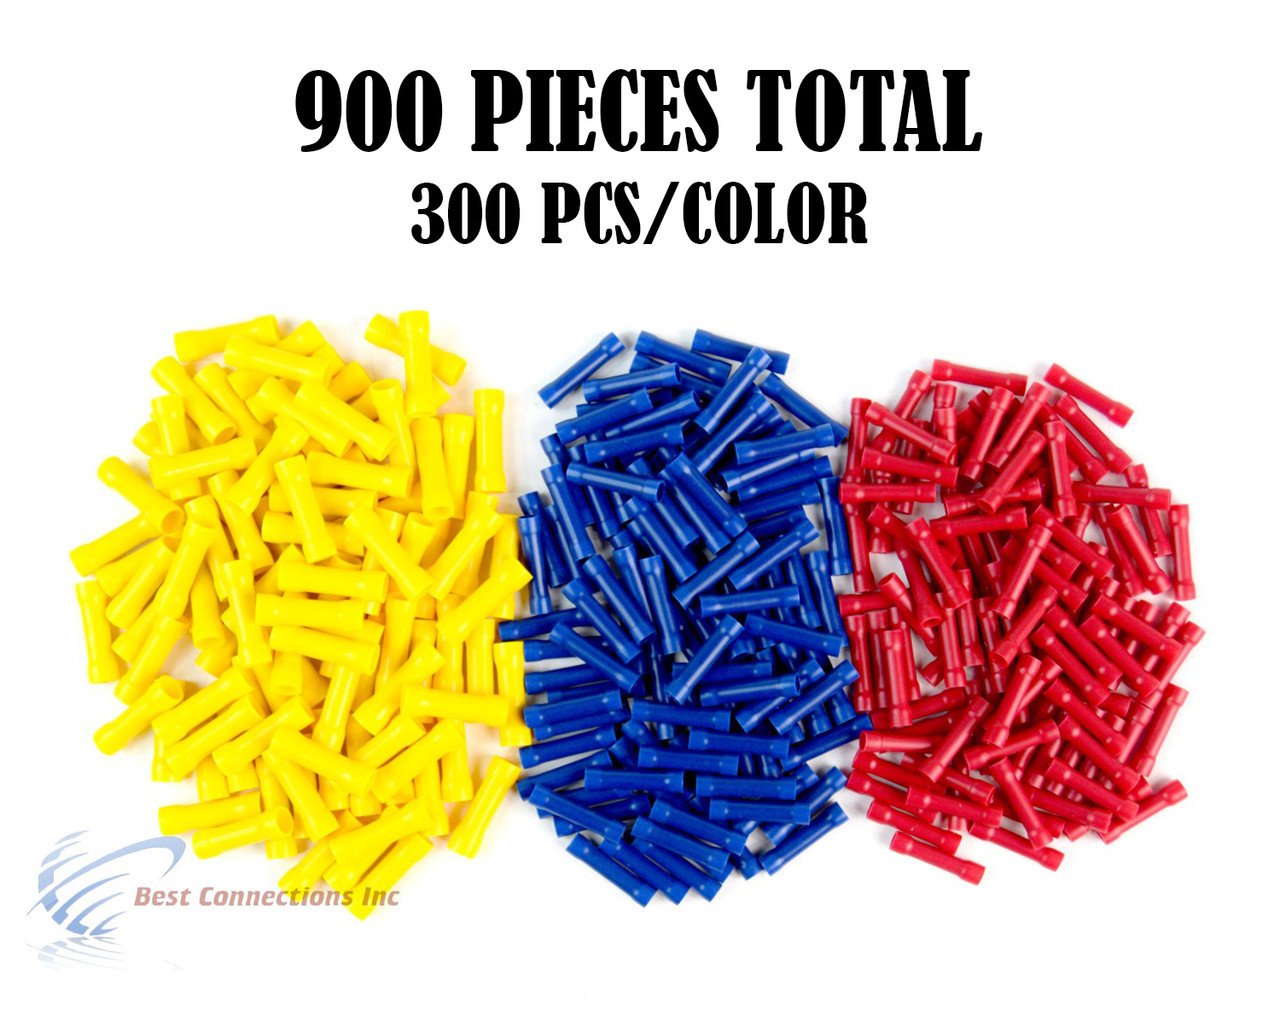 900 RED BLUE YELLOW NYLON BUTT CONNECTOR 22-18 16-14 12-10 AWG GA SCOSCHE